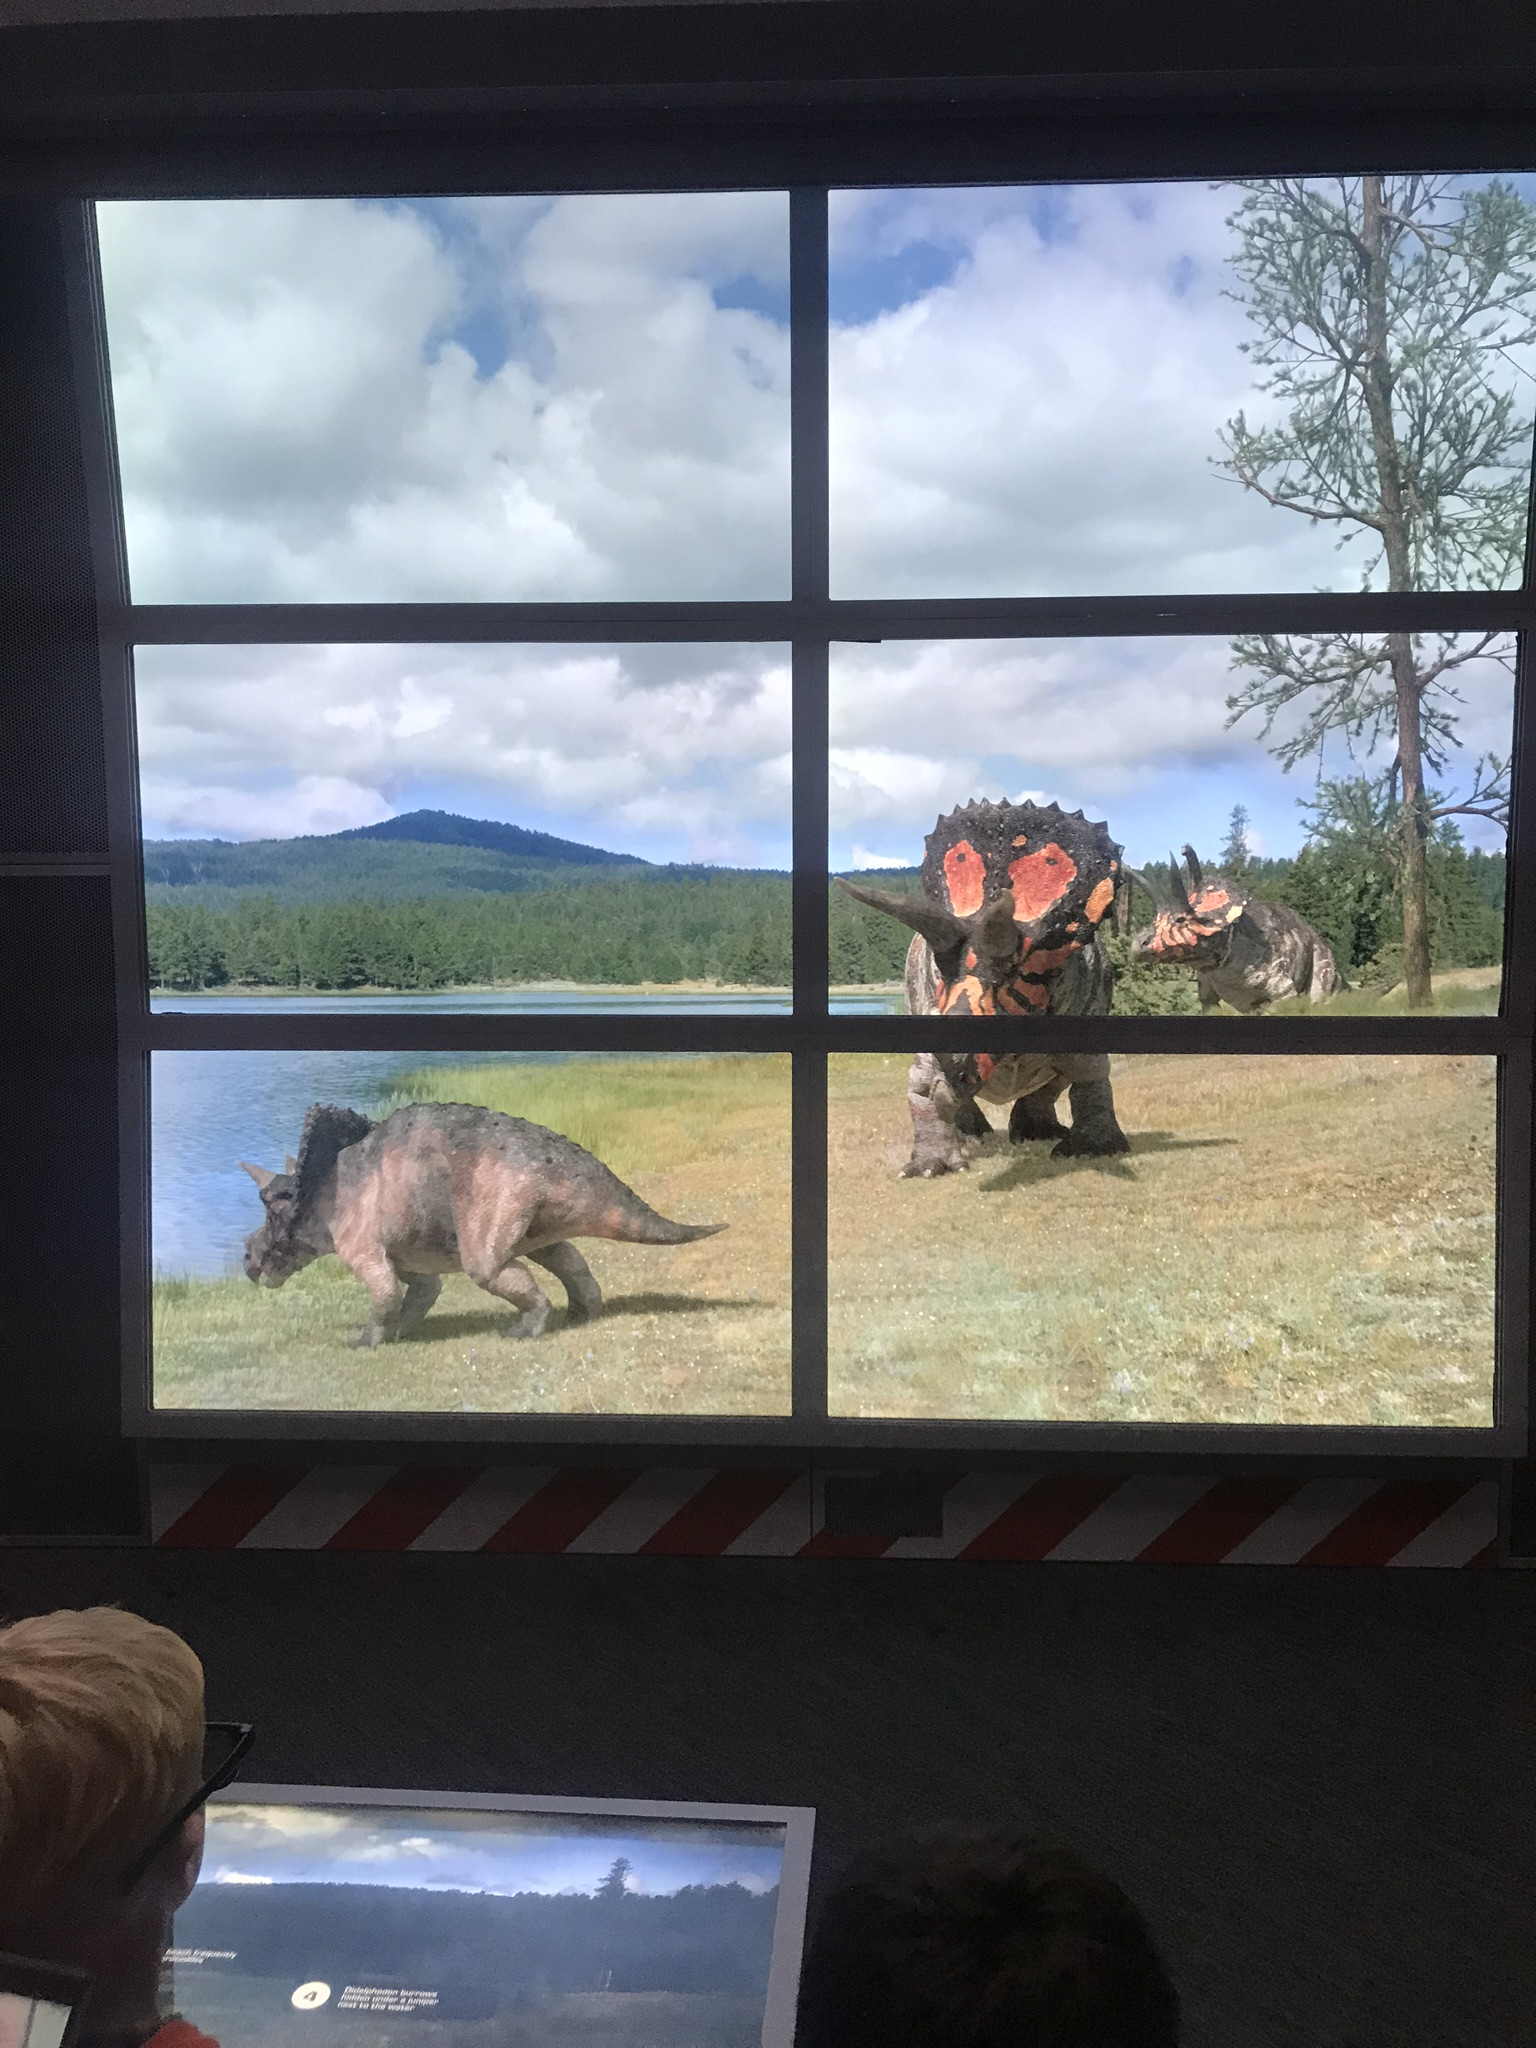 Triceratops at the look out